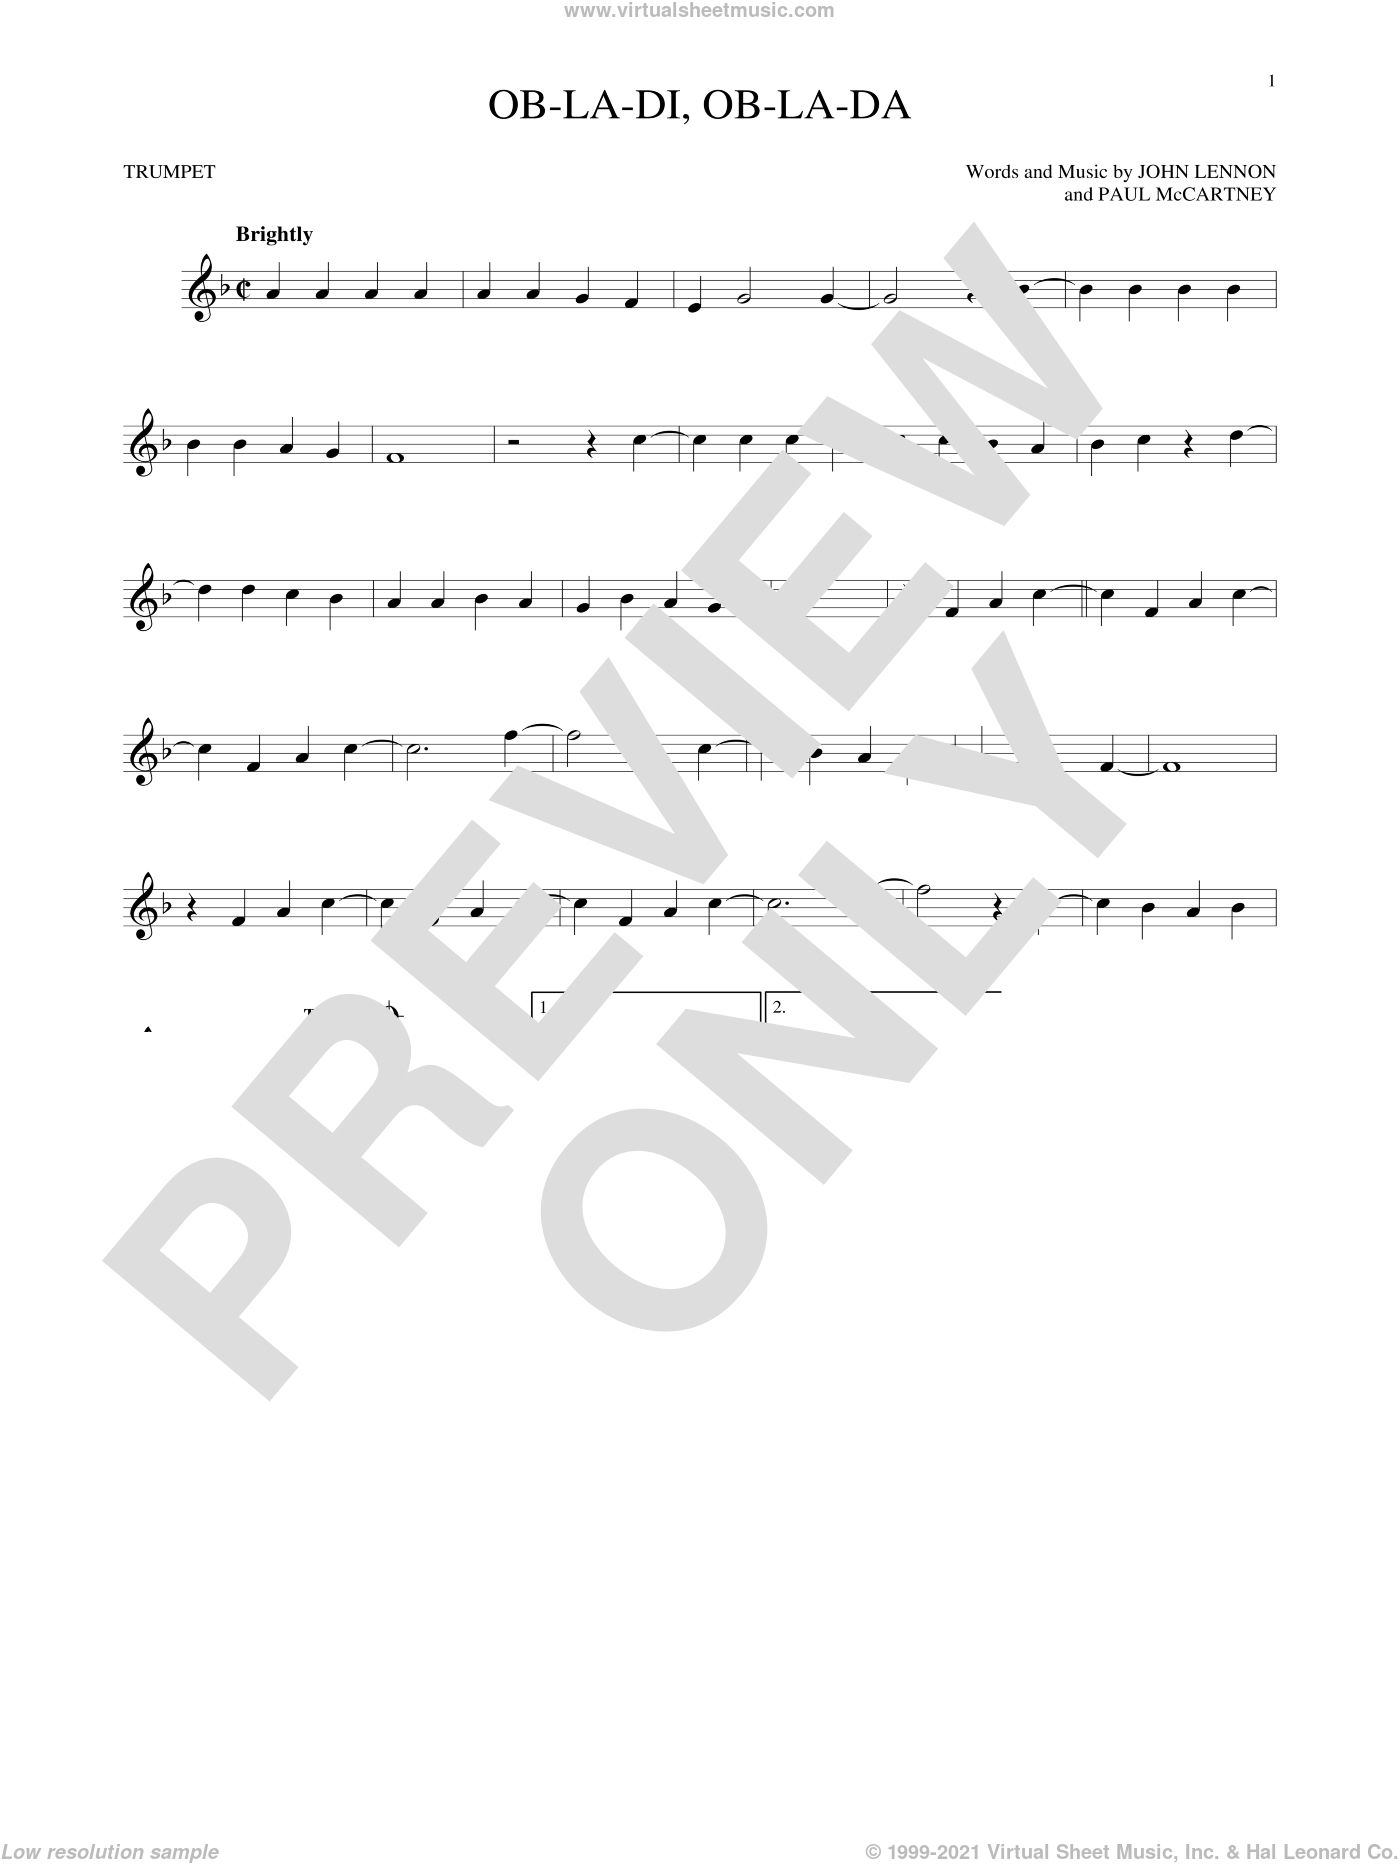 Ob-La-Di, Ob-La-Da sheet music for trumpet solo by The Beatles, John Lennon and Paul McCartney, intermediate trumpet. Score Image Preview.